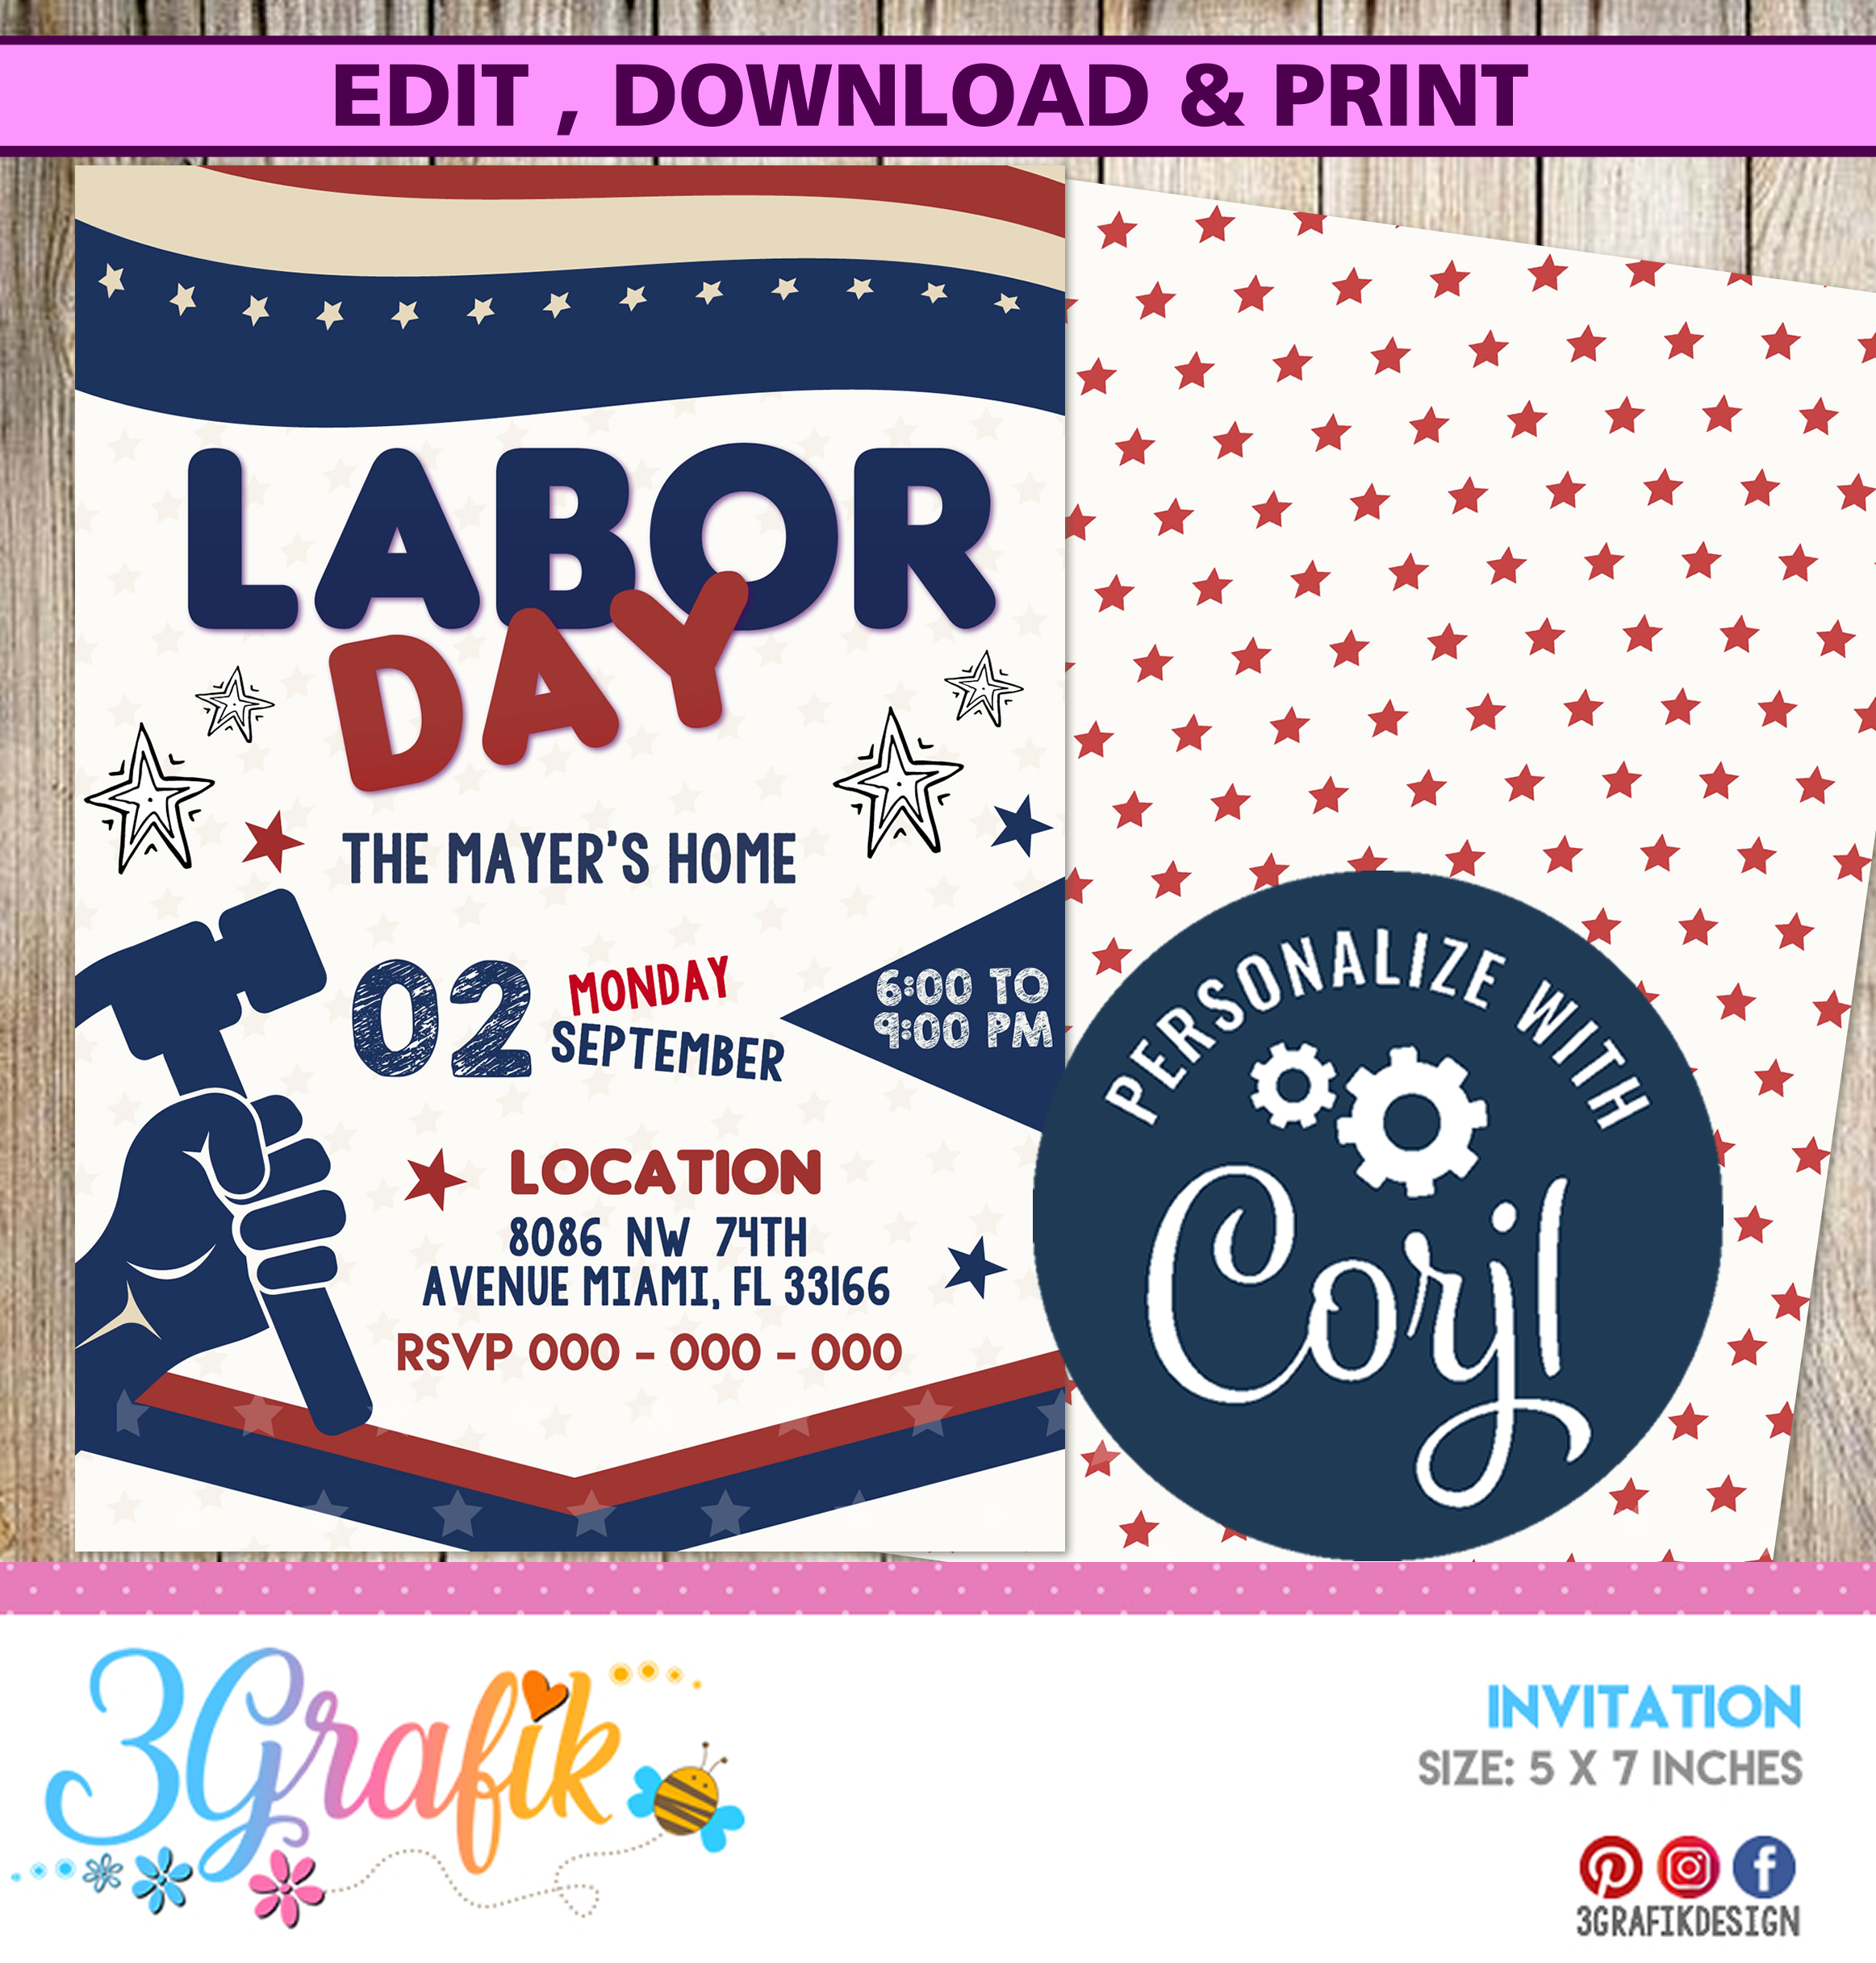 picture regarding Closed for Labor Day Printable Sign titled Labor Working day - Invitation Printable